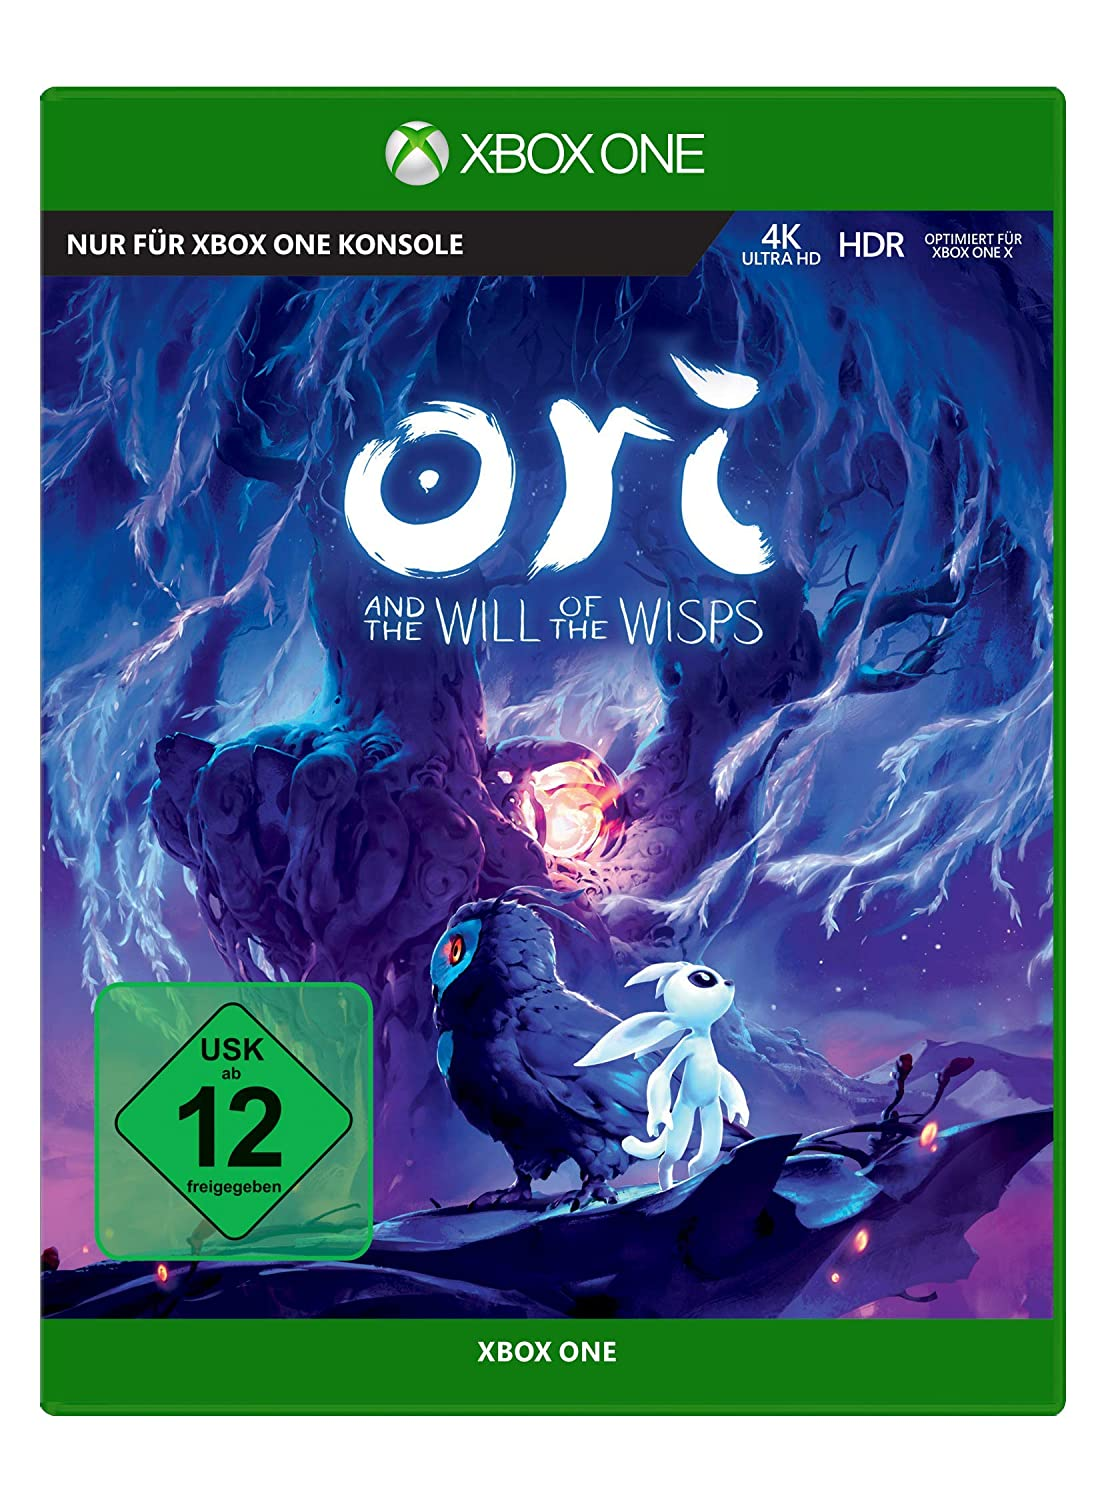 [amazon.de] Ori and the Will of Wisps um 15,12€ anstatt 30,24€